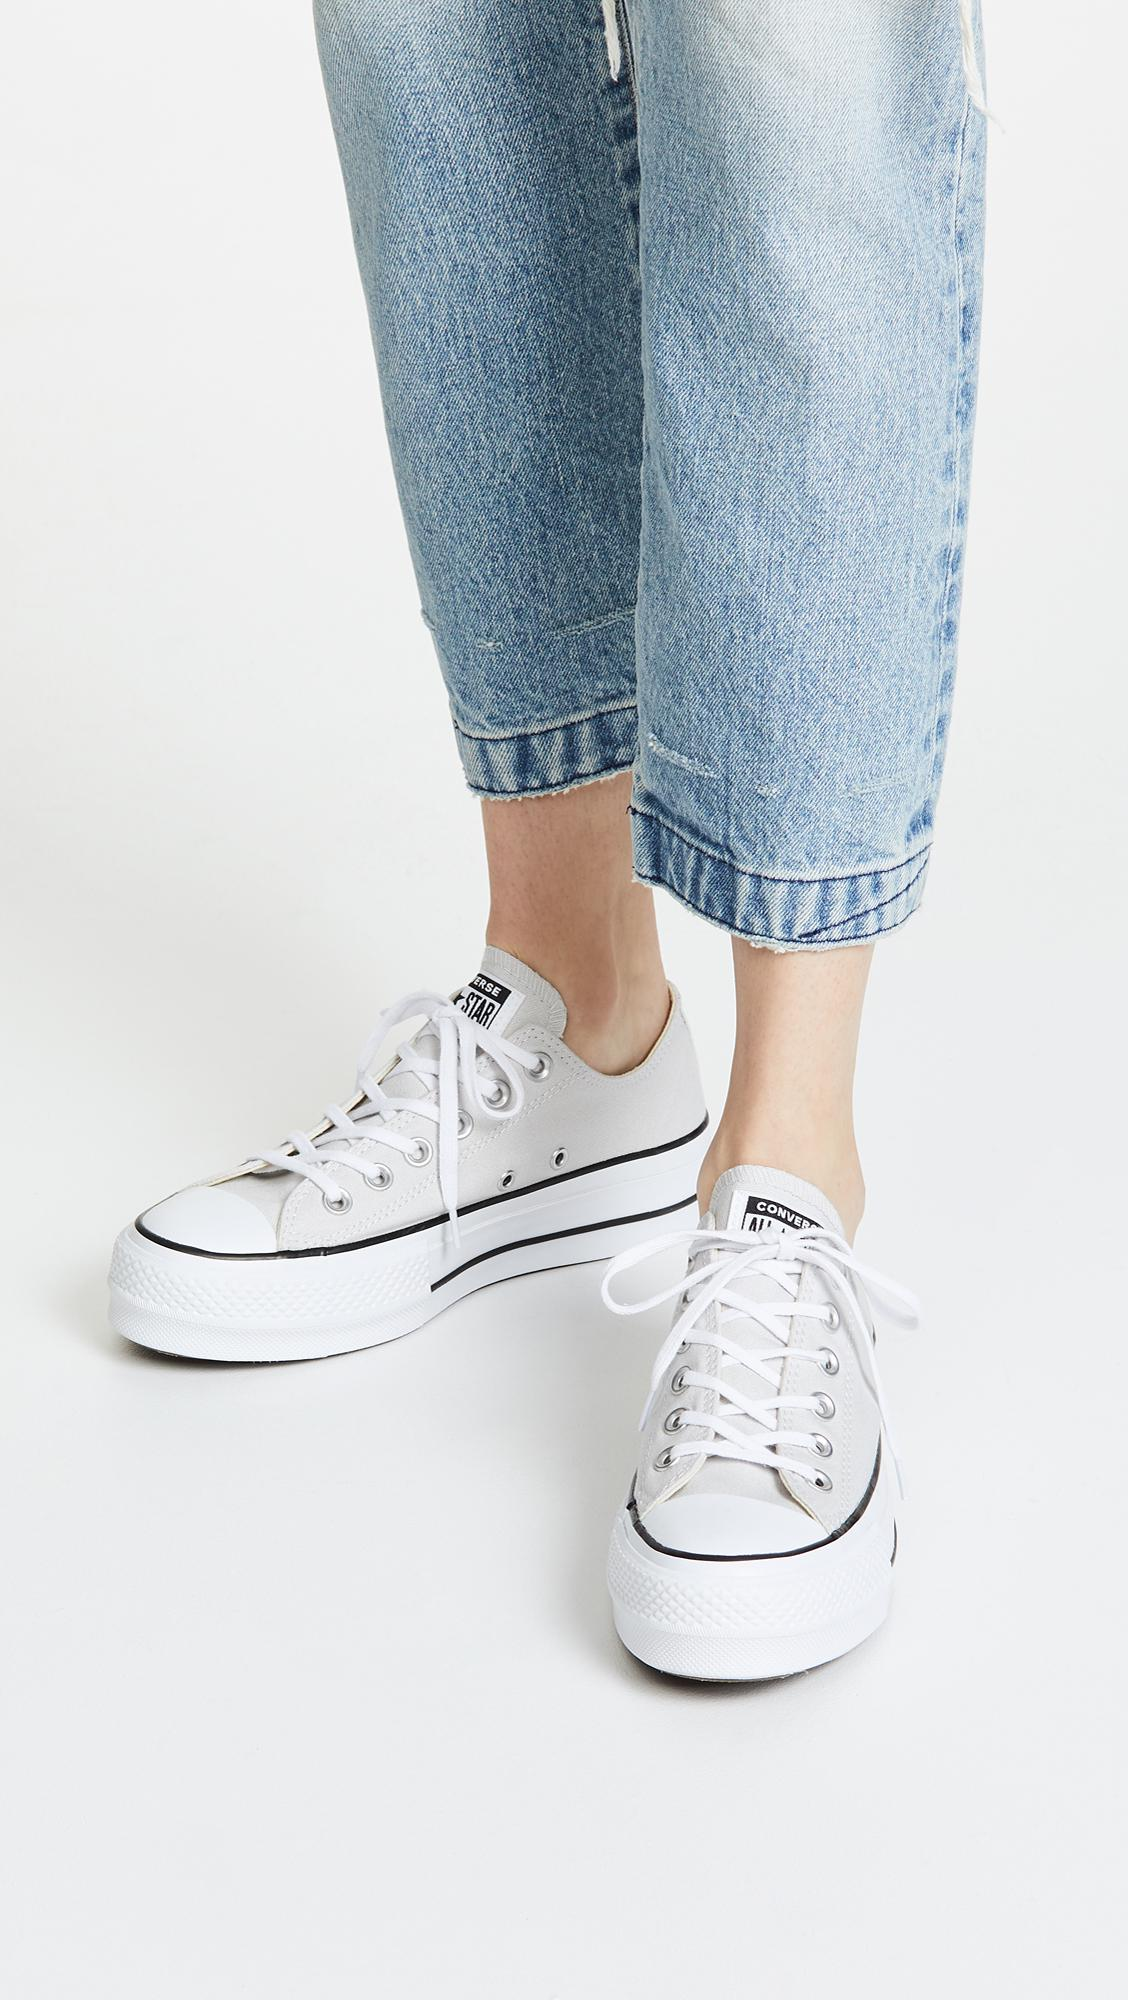 converse all star lift